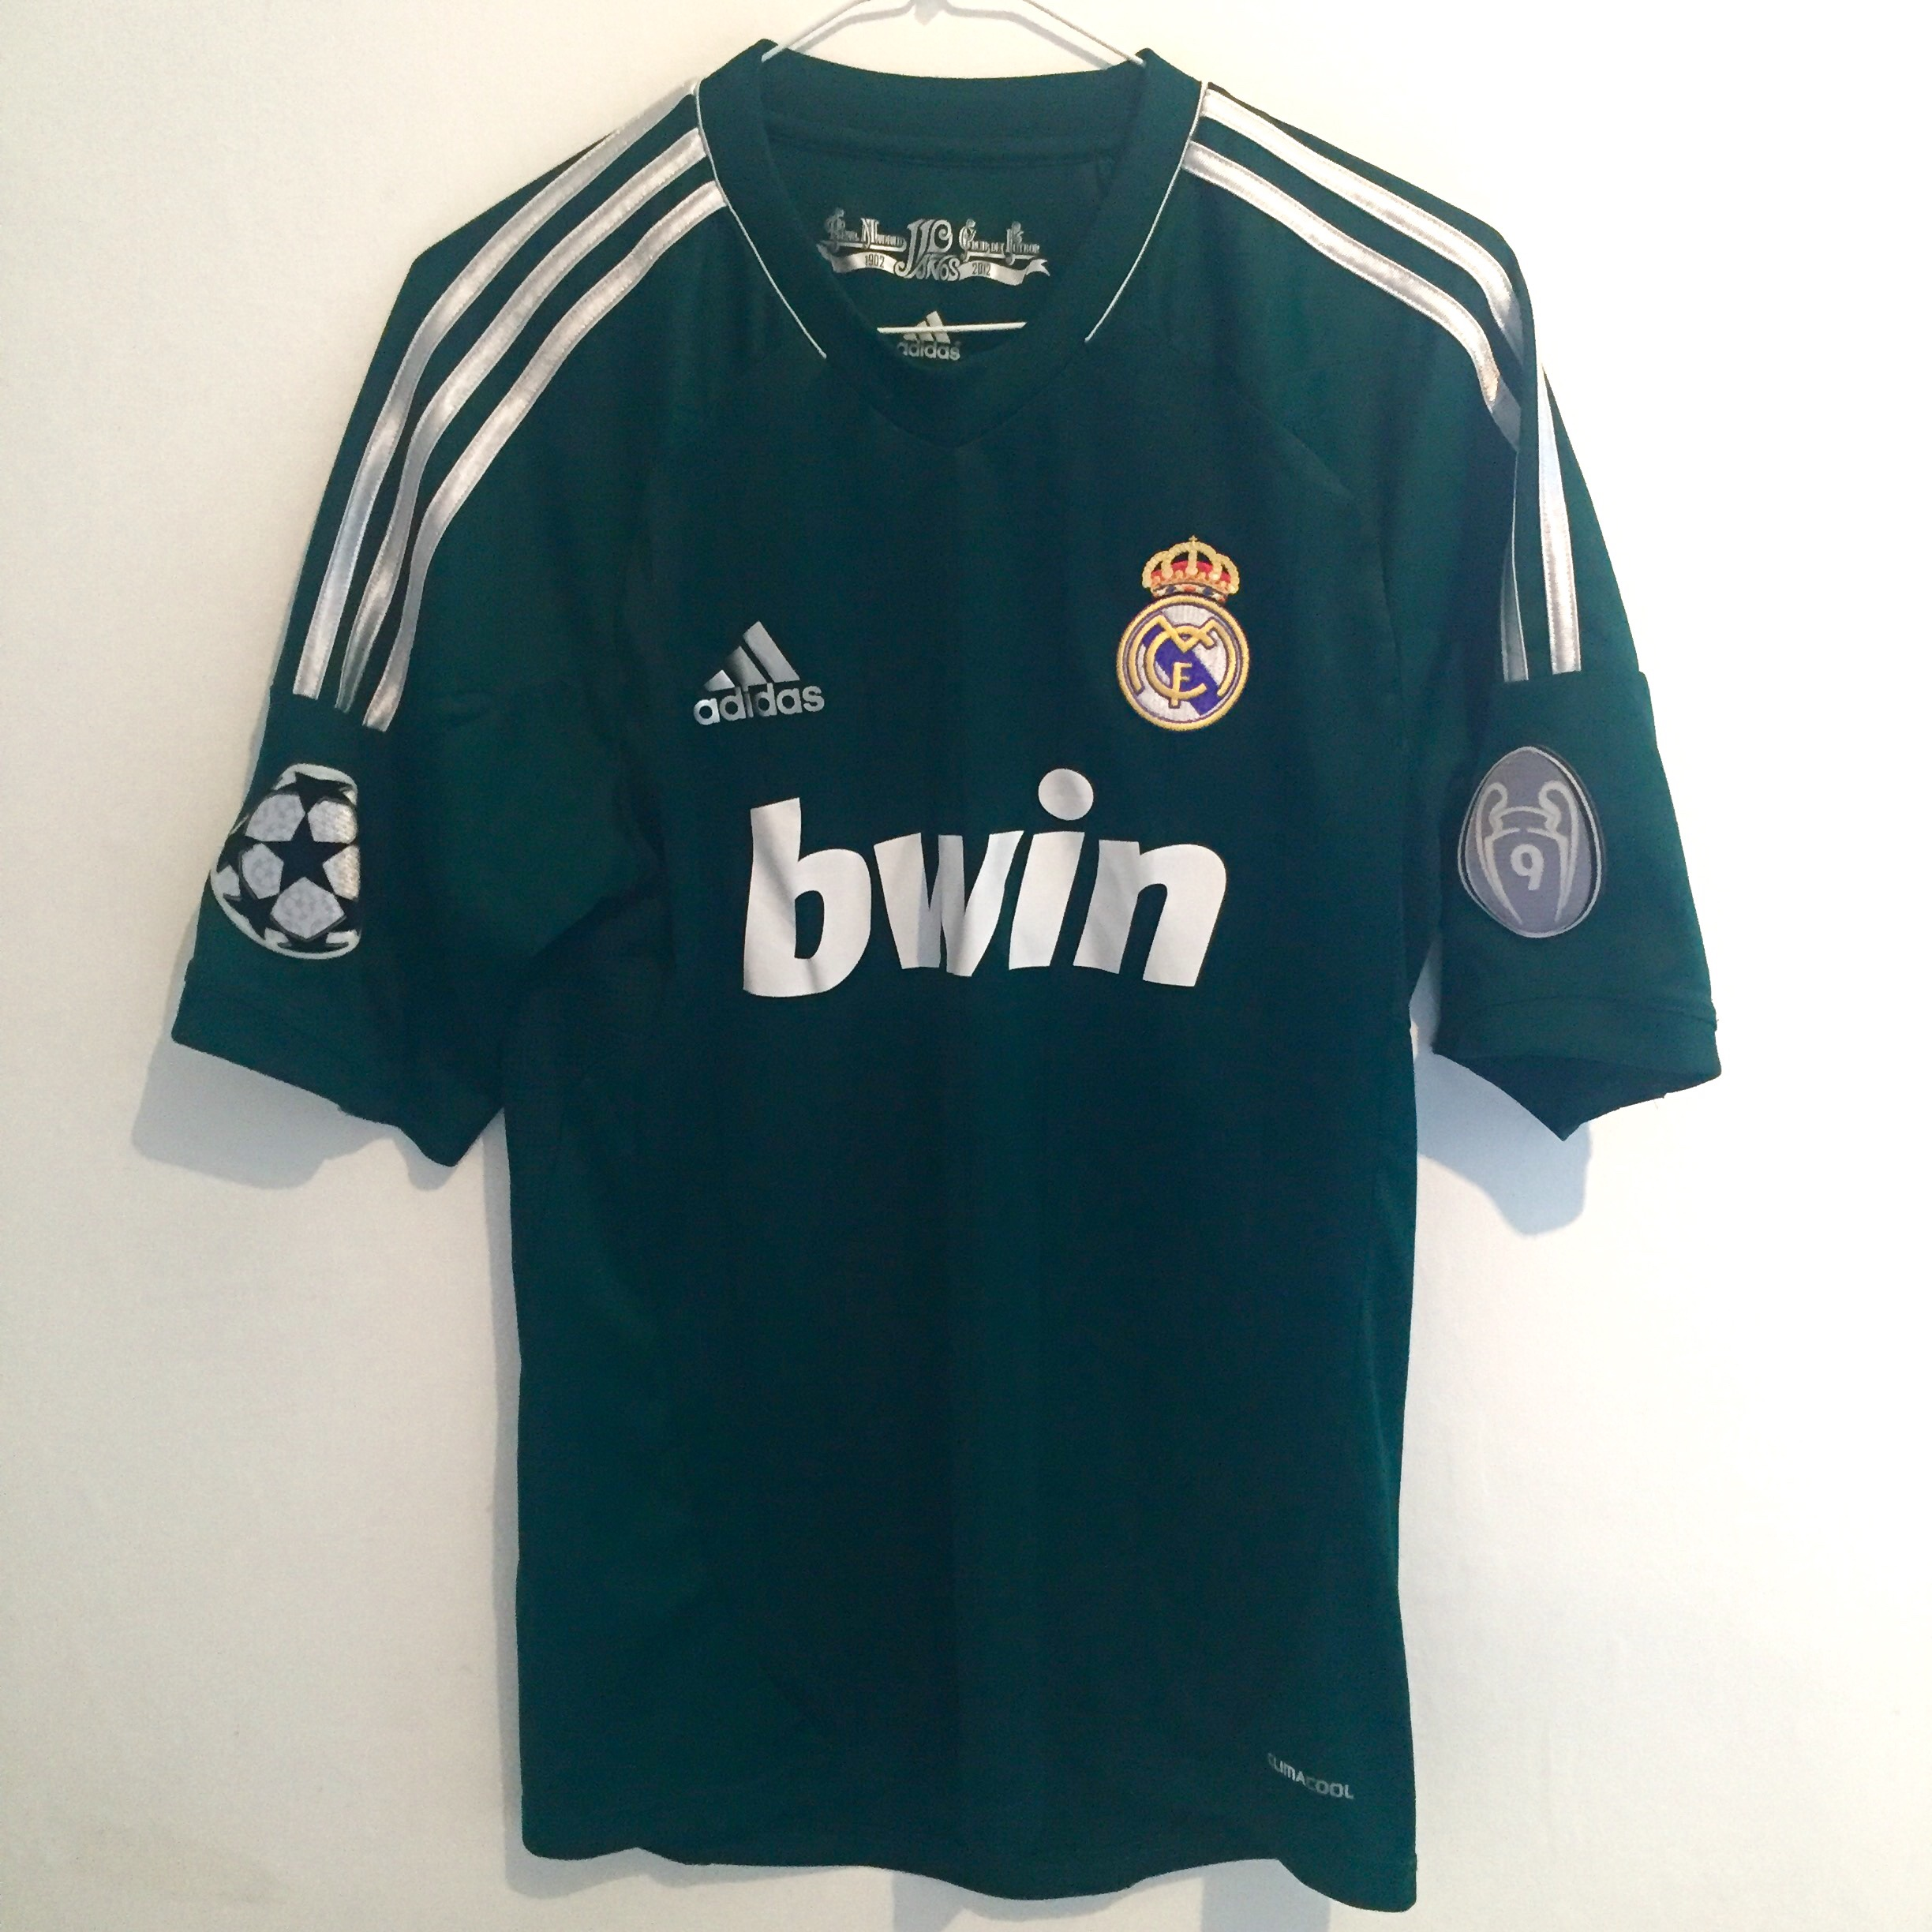 promo code e4a2b 92f89 Real Madrid 2012-13 Away Football Shirt with... - Depop